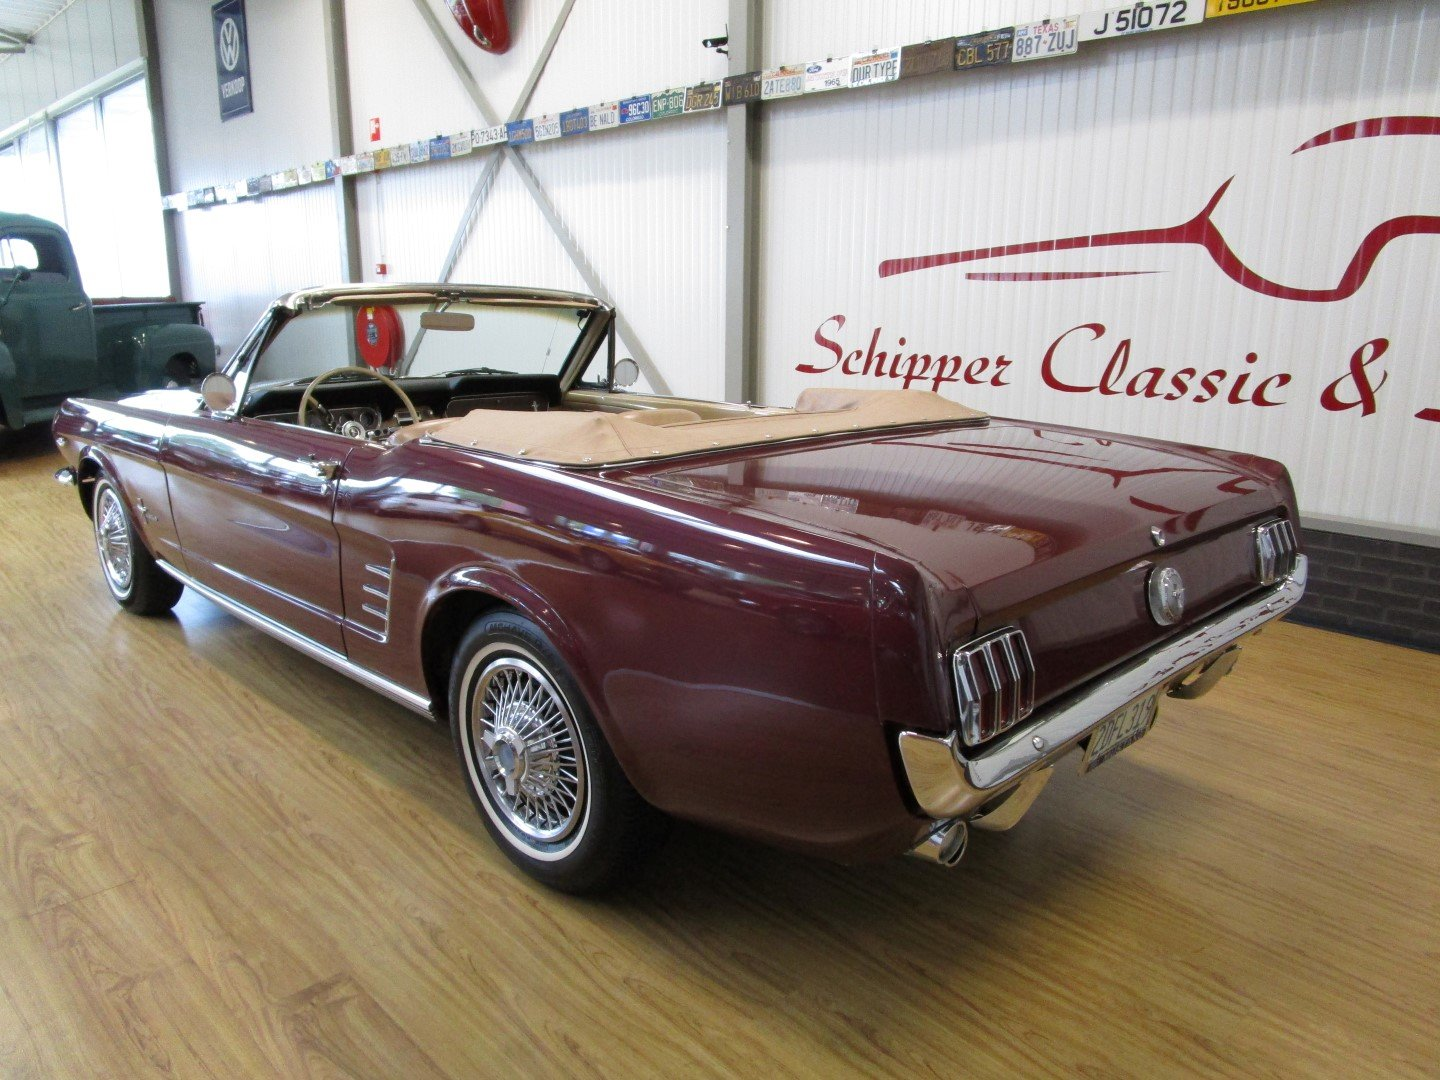 1966 Ford Mustang 289 V8 Cabrio For Sale (picture 3 of 6)